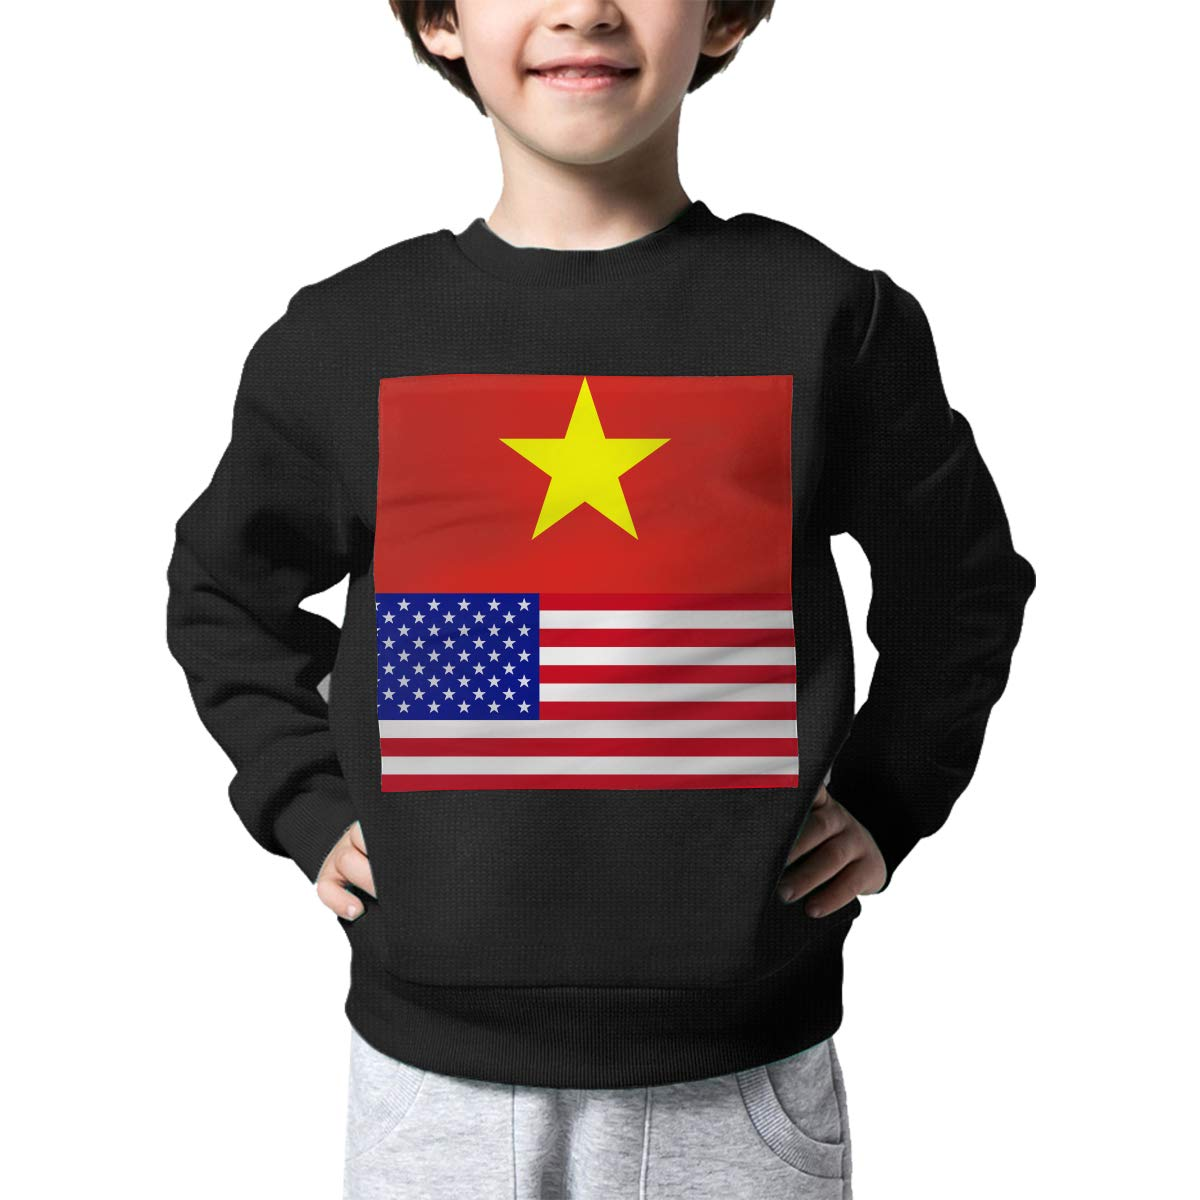 NJKM5MJ Boys Girls Vietnam-American Proud Lovely Sweaters Soft Warm Childrens Sweater